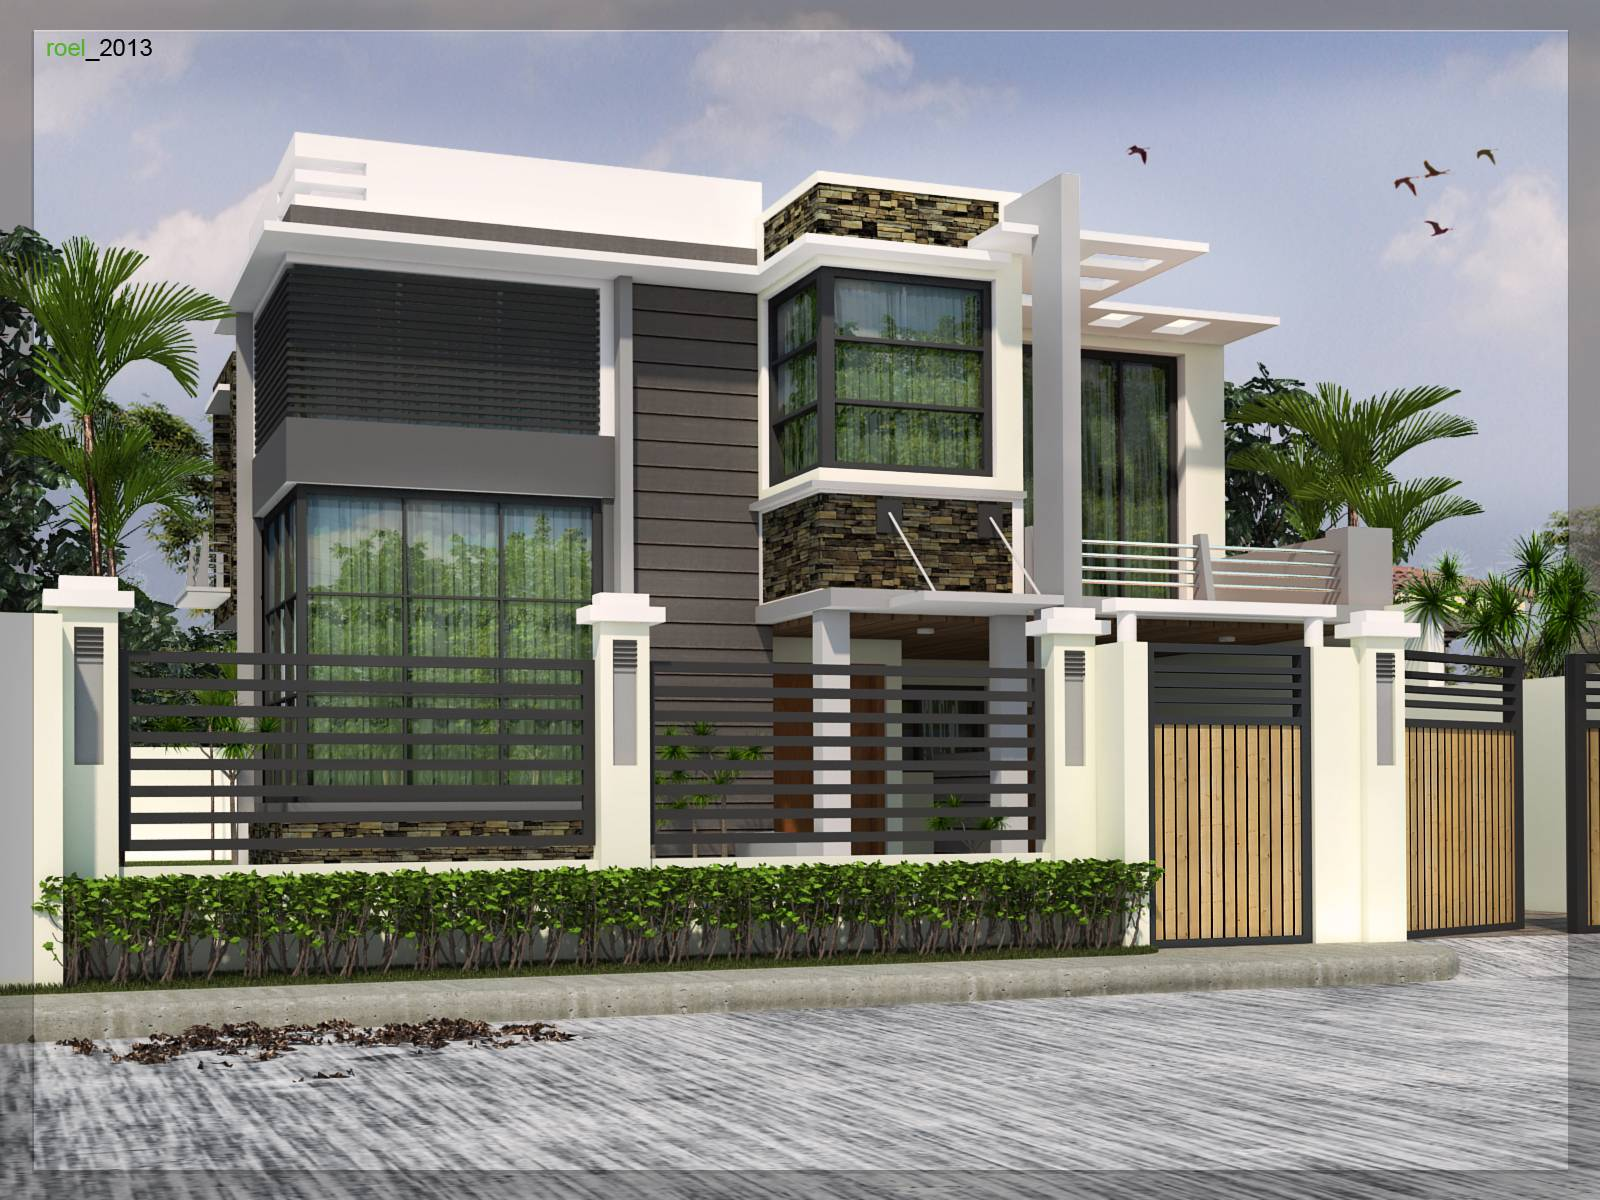 delightful best 2 story house plans 7 personal desk two storey delightful best 2 story house plans 7 personal desk two storey residential building 1340805 jpg